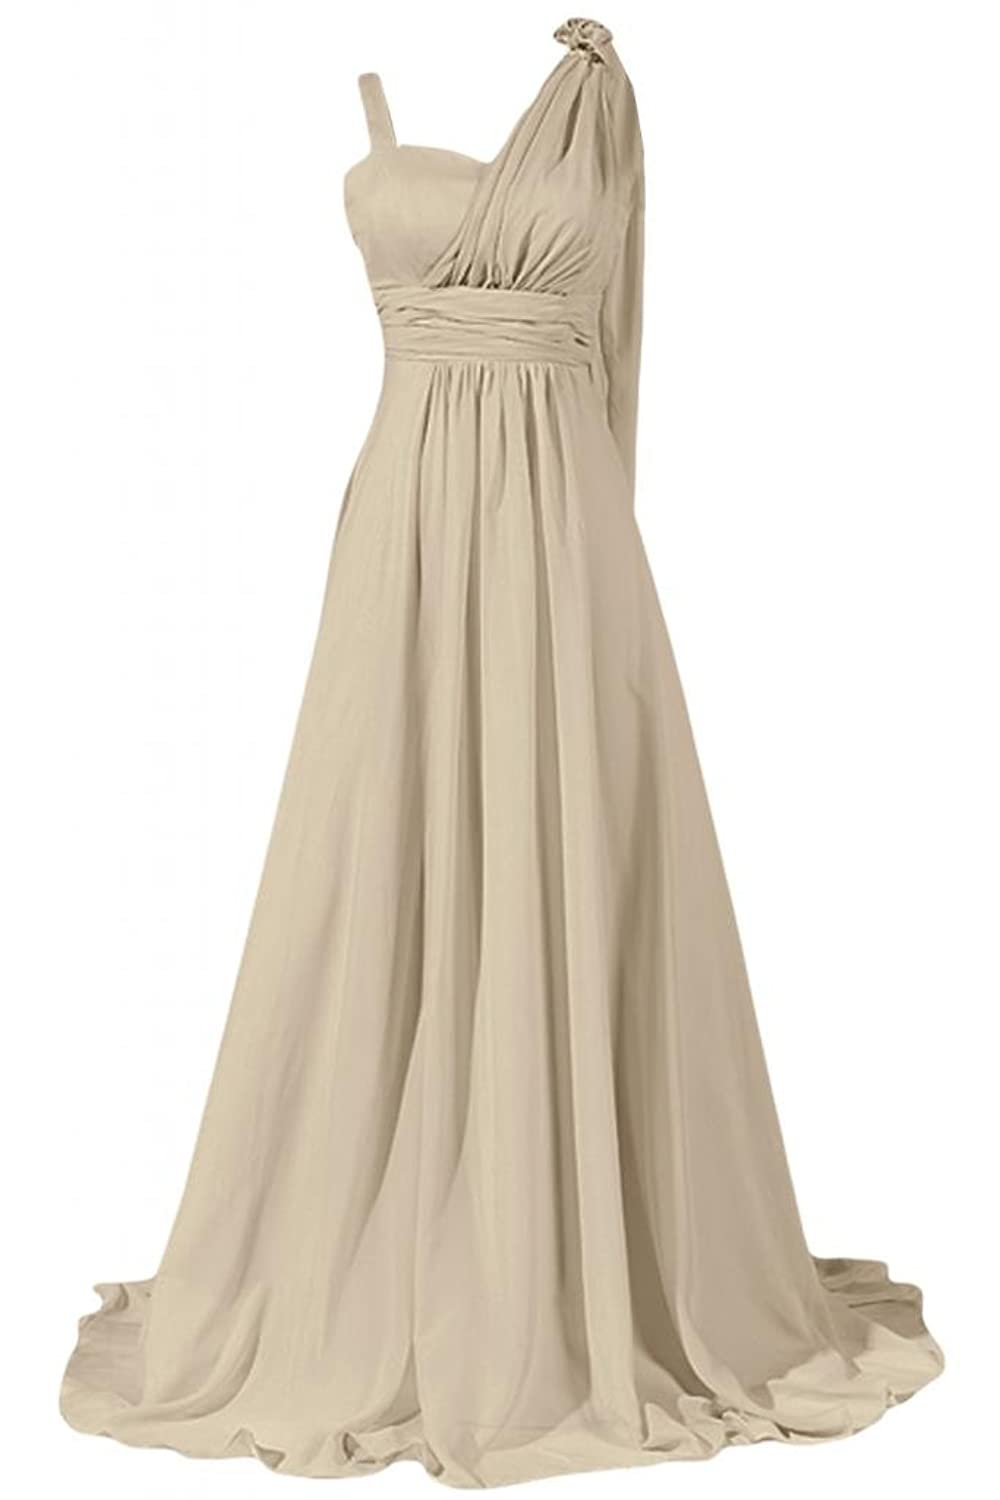 Sunvary Elegent A-Line Asymmetrical Straps Sweep Evening Dress Formal Gown